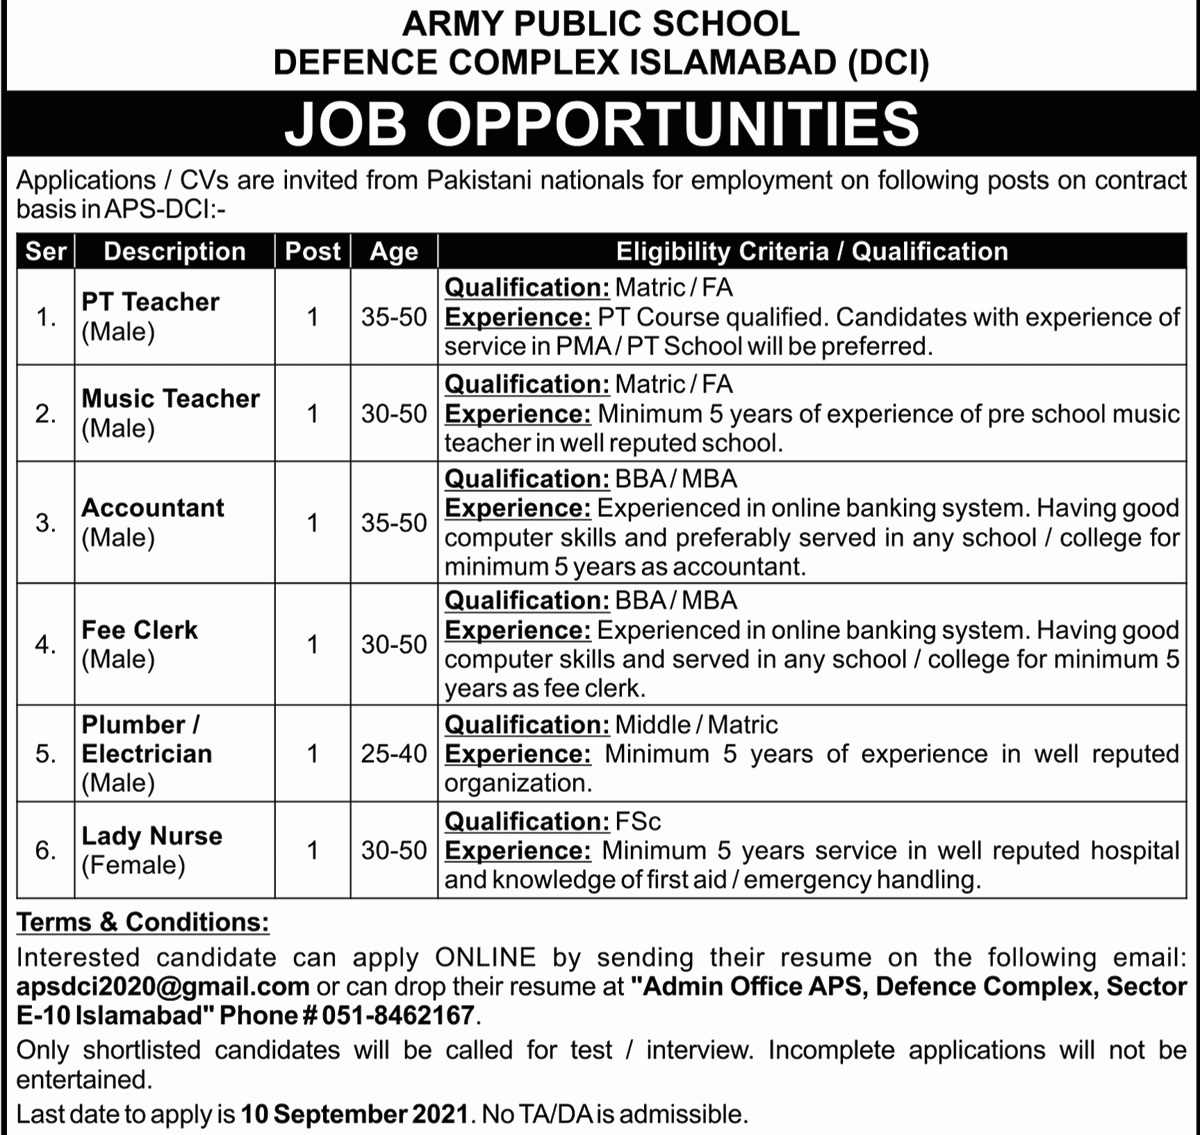 Latest Government jobs in Islamabad Today At APS Army Public School Islamabad